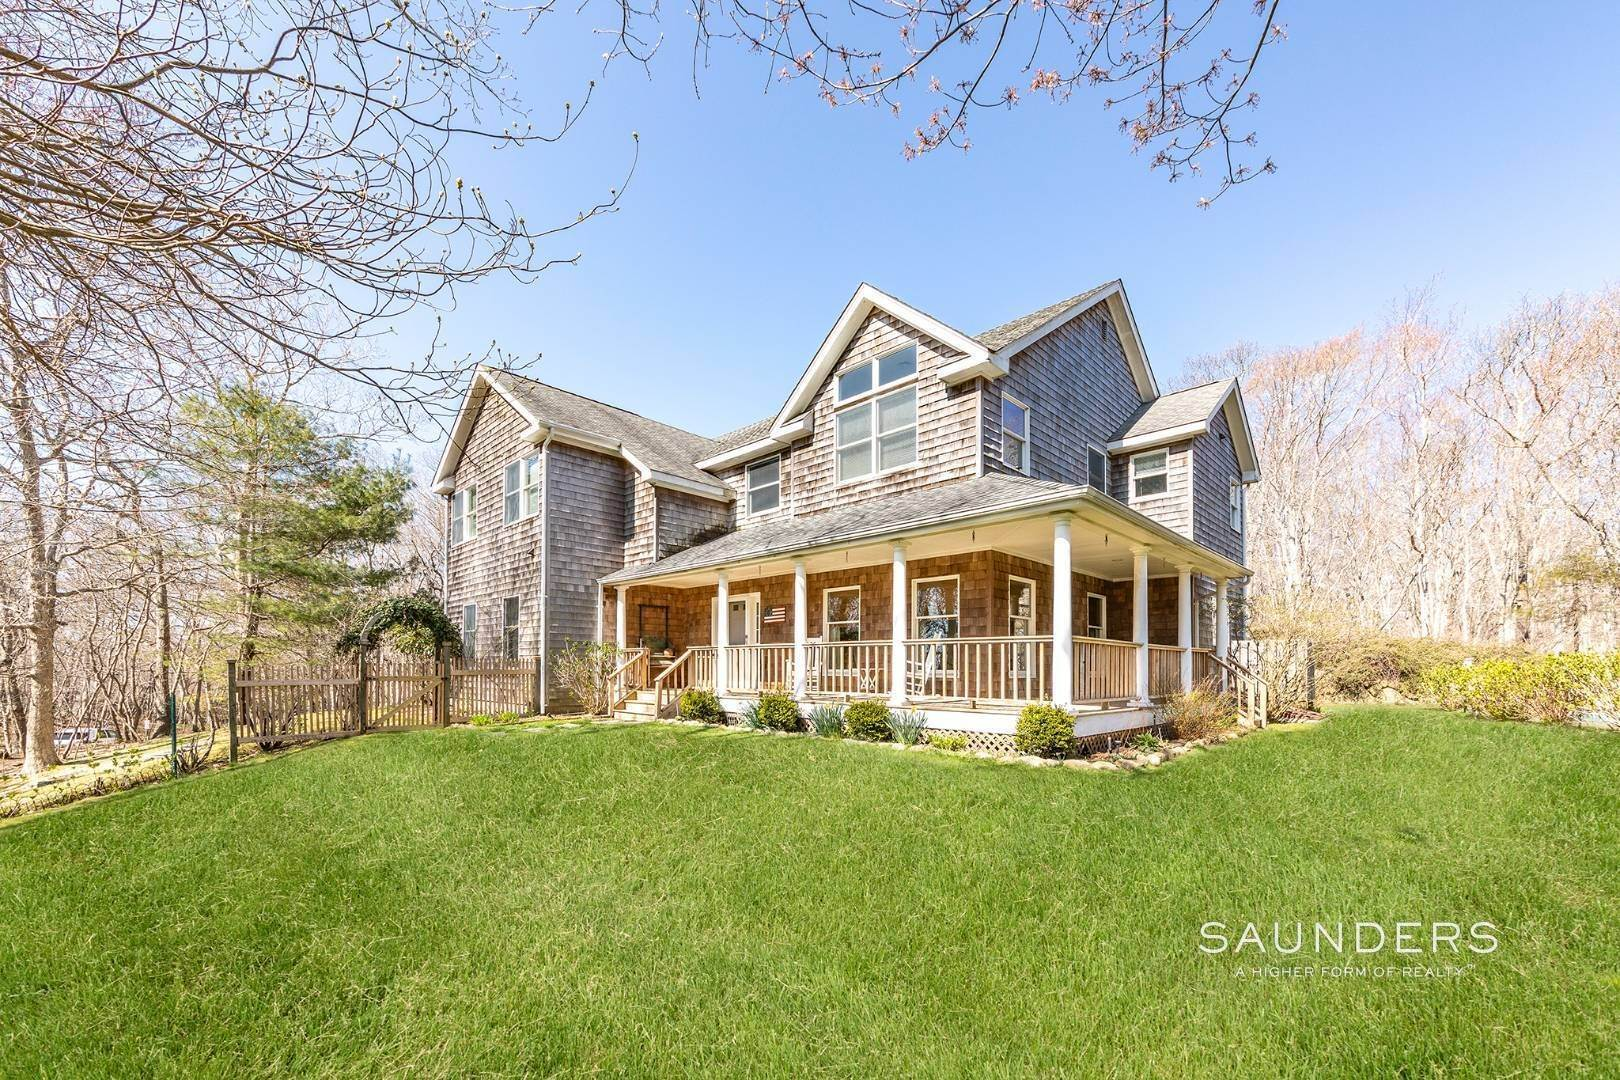 Single Family Homes for Sale at Montauk Turnkey With Pool 24 Dogwood Street, Montauk, East Hampton Town, NY 11954